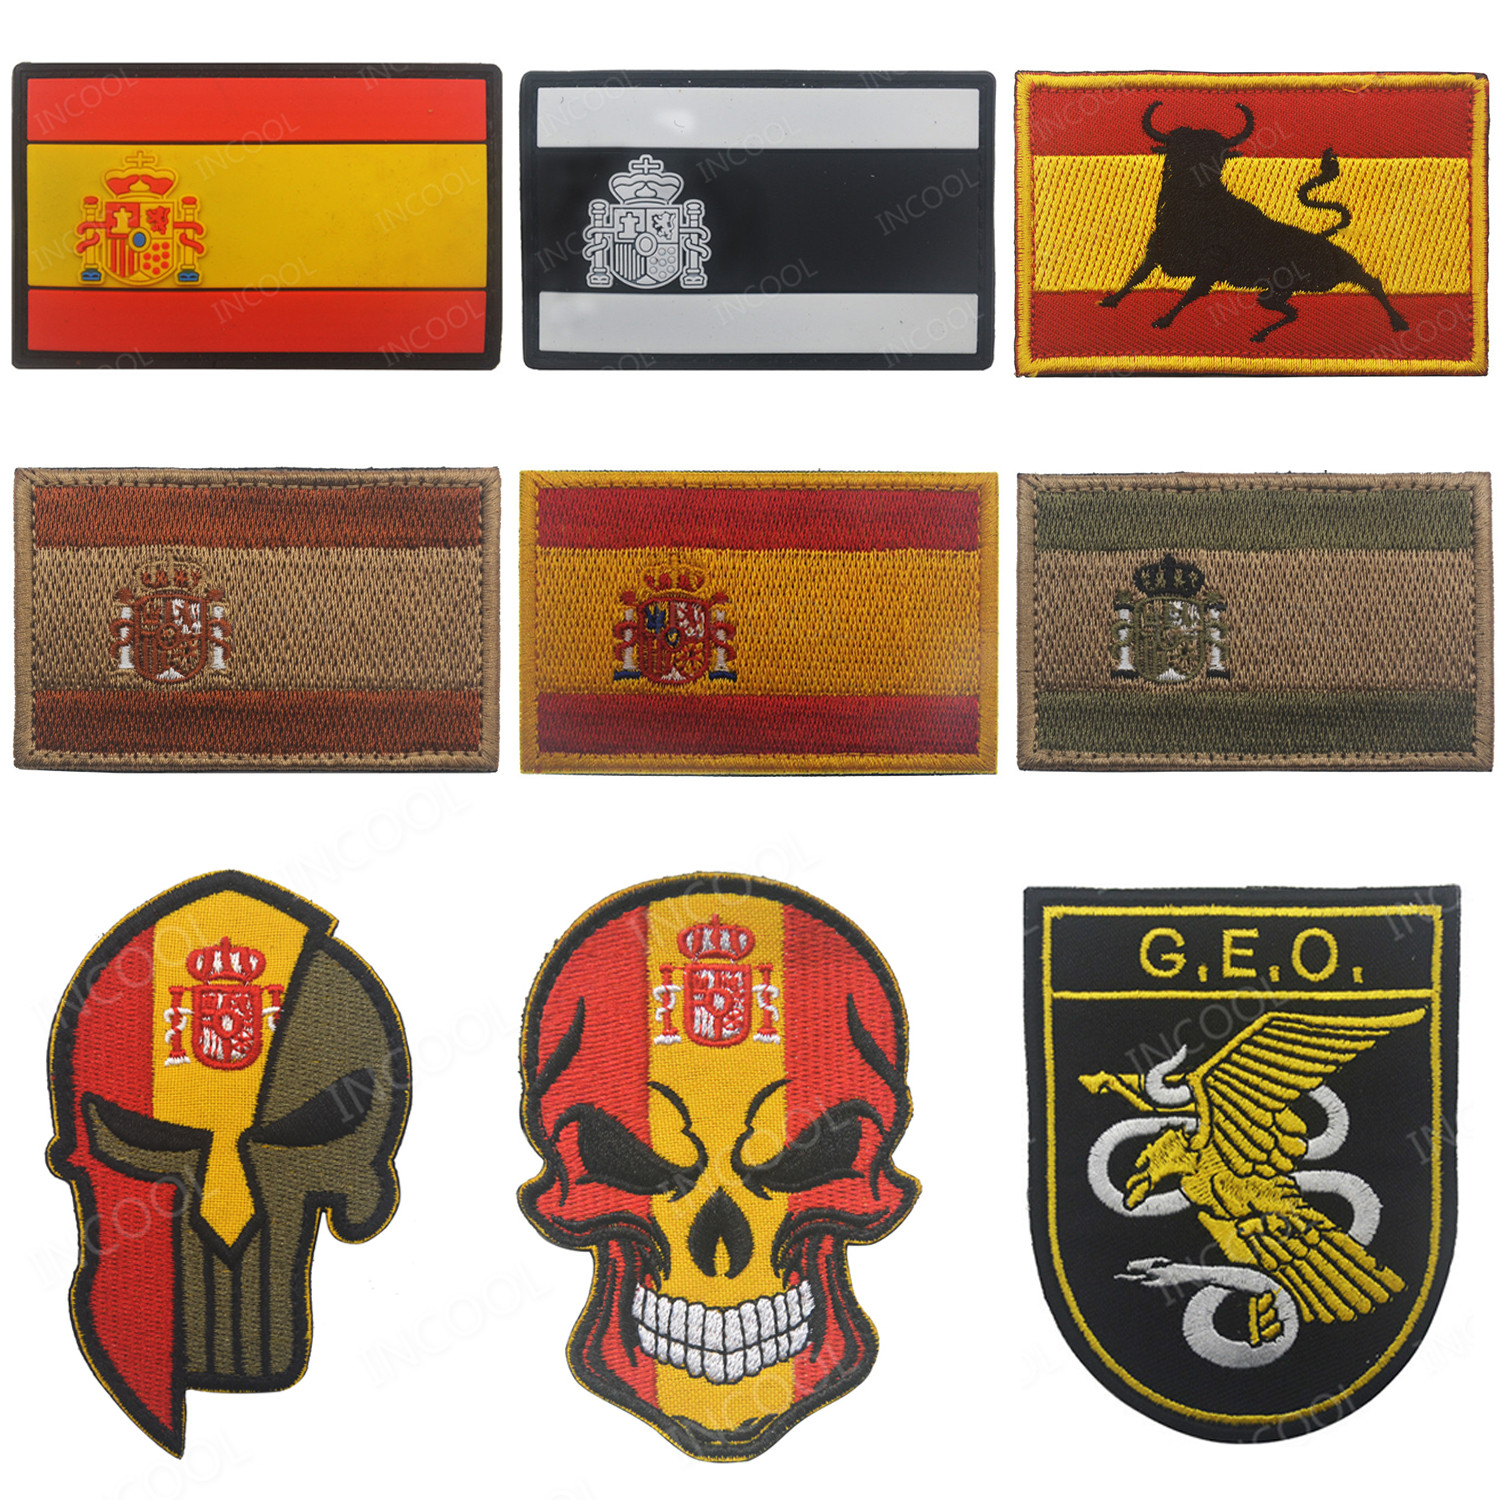 Embroidery Patch Spain Flag Army Military Tactical Morale Patches Emblem Appliques Spanish Flags Rubber PVC Embroidered Badges